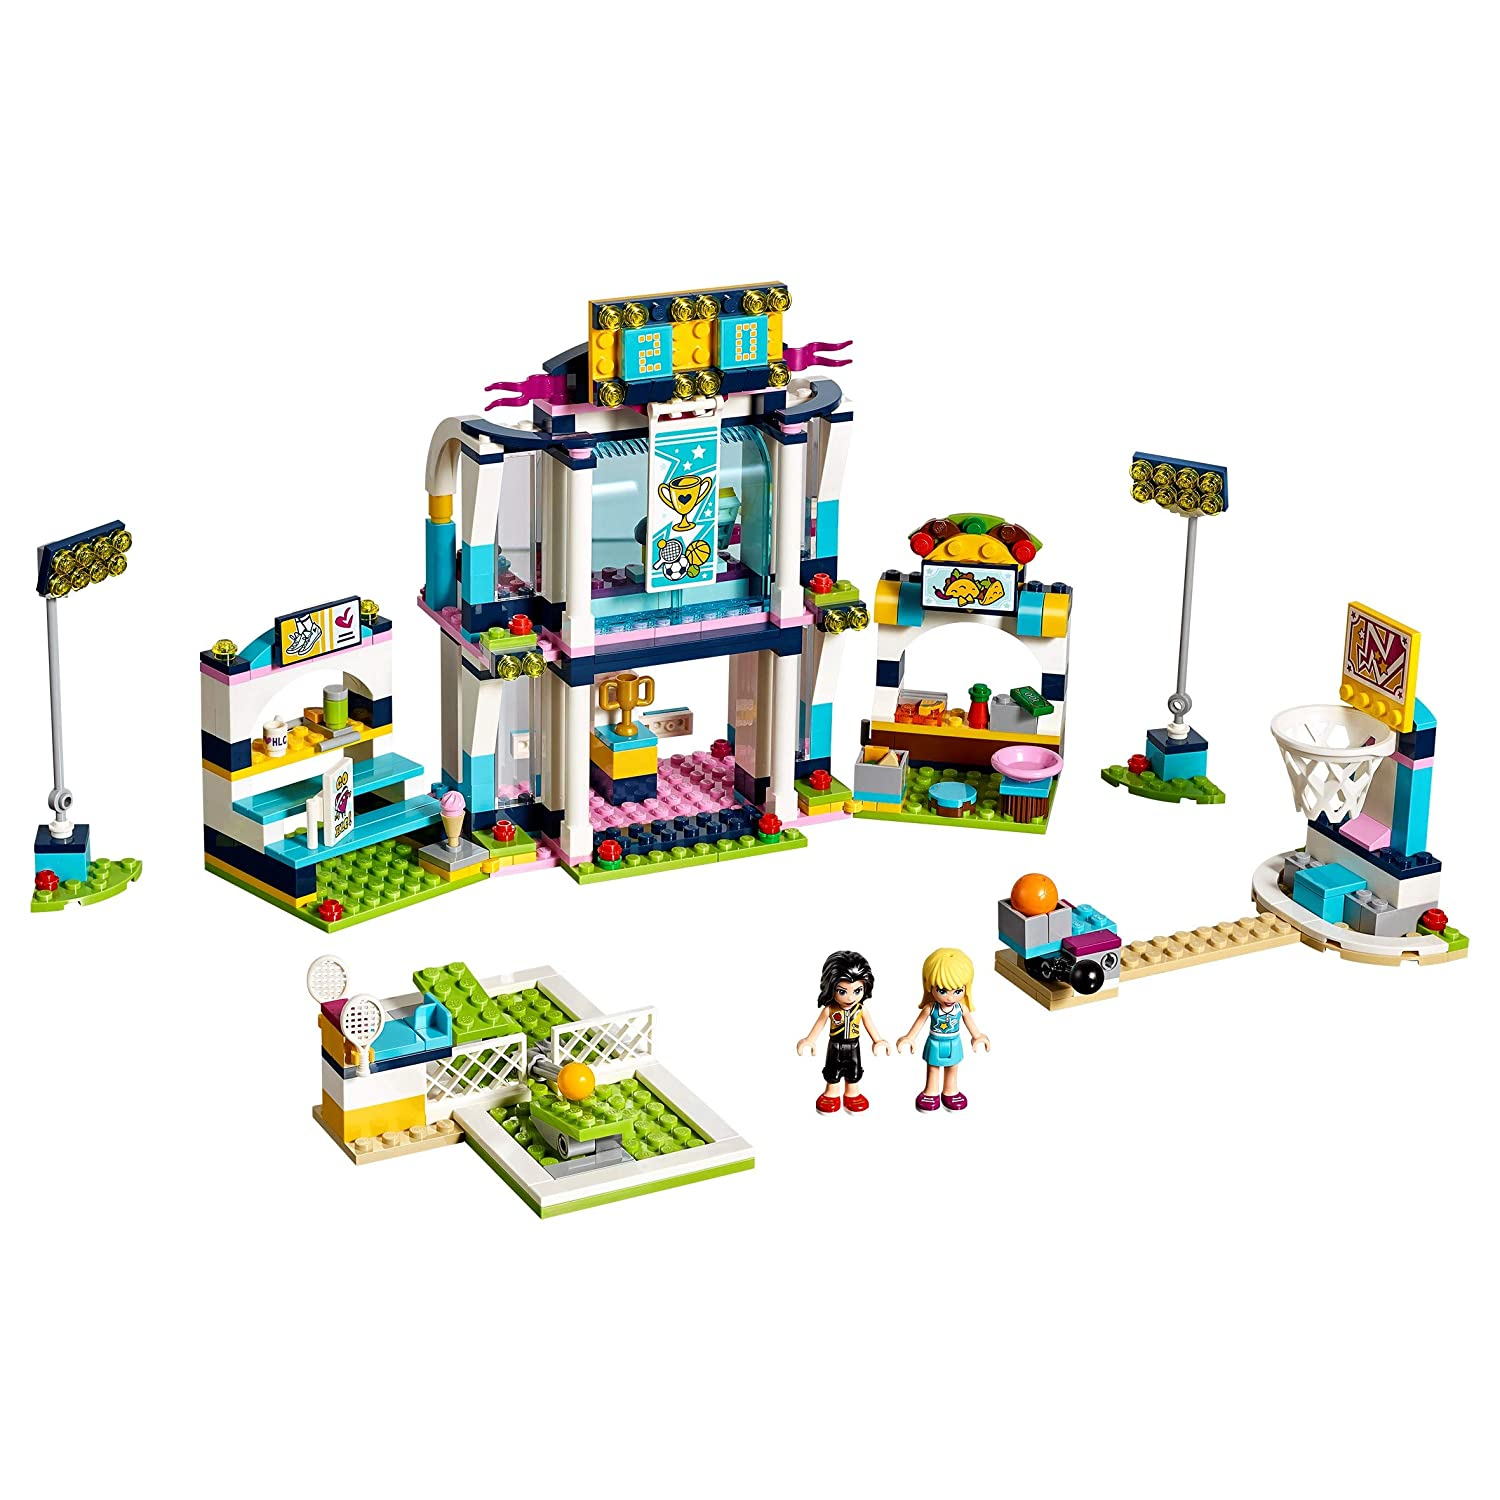 Lego 41338 Friends Heartlake Stephanies Sports Arena Playset